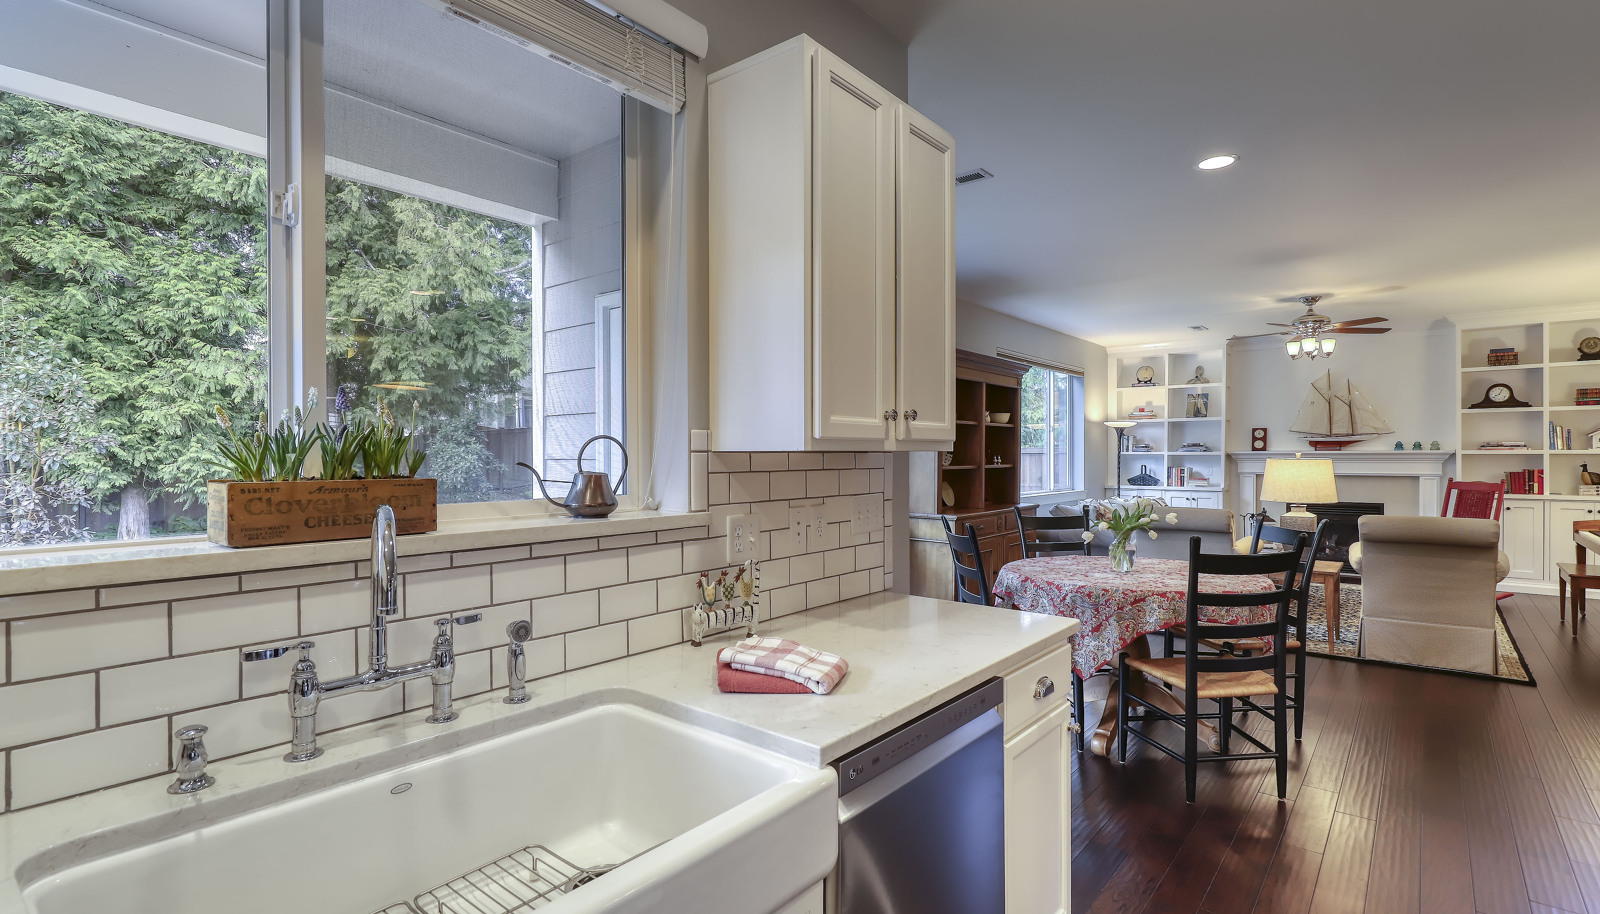 The stunning kitchen is open to the informal dining area and spacious living room!